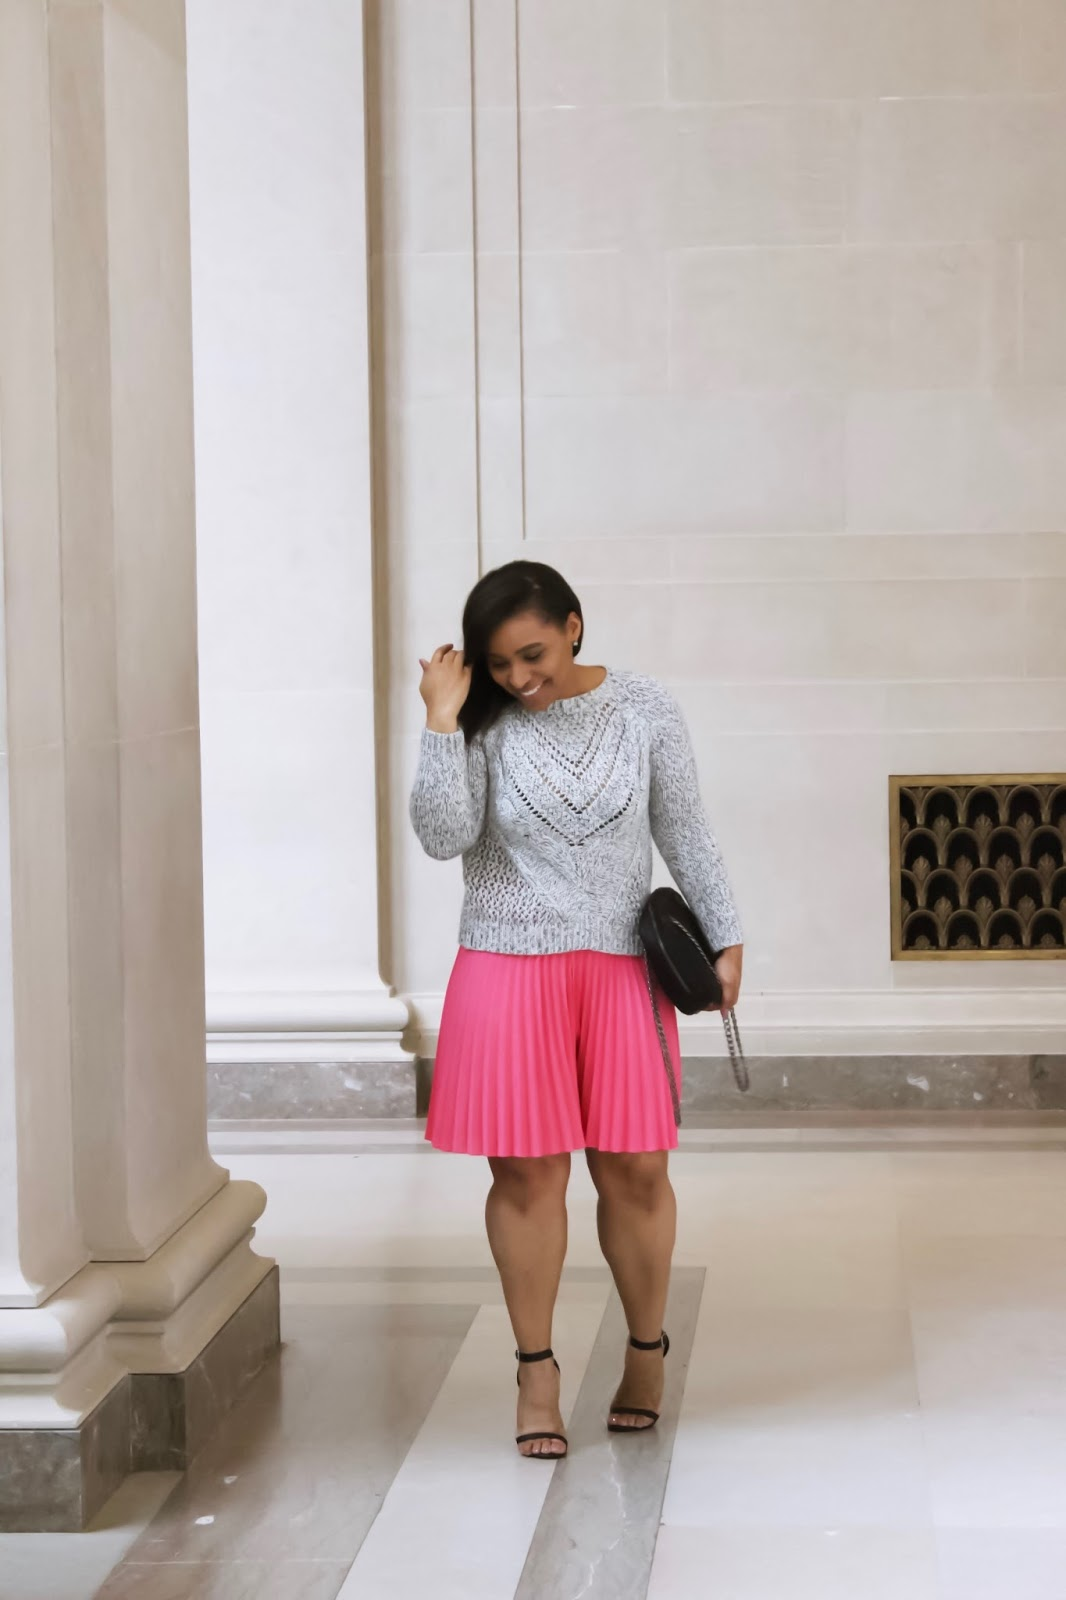 Spring Trends: Pleated Skirts, pleated skirts, pink pleated skirt, spring outfits, knitted sweater, spring trends, pink outfits, pleated trends, pleated skirts knee length